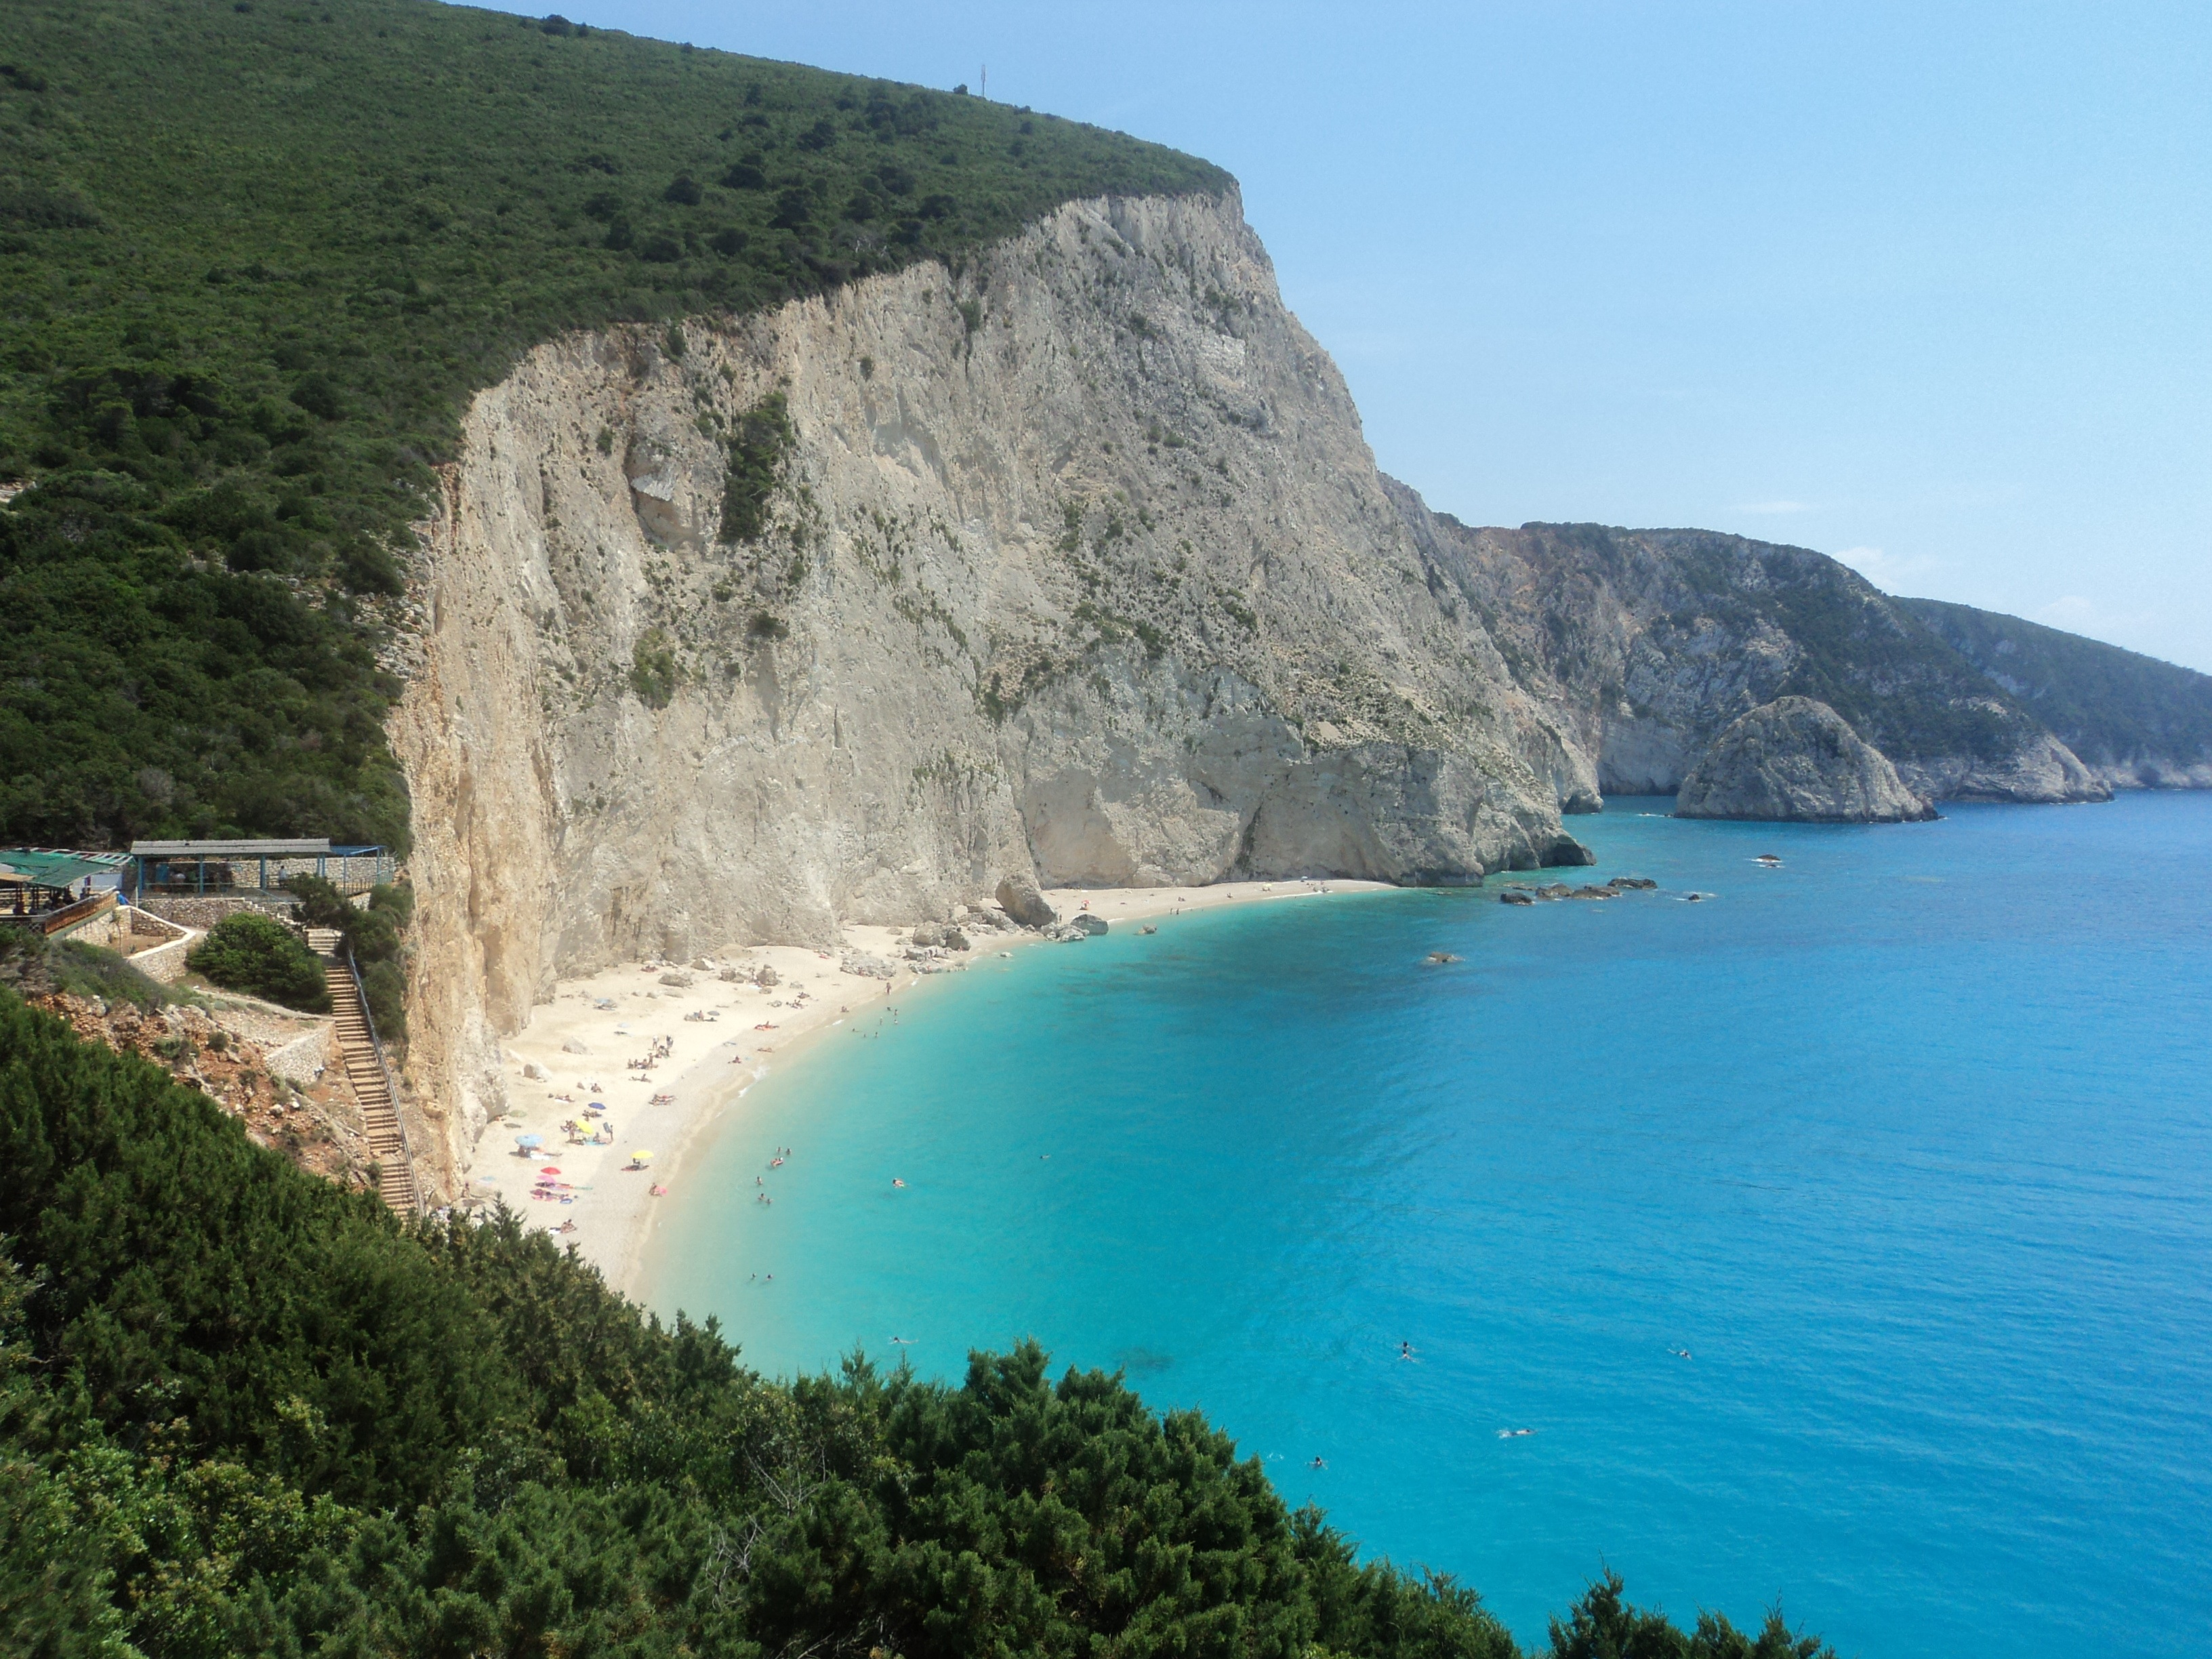 LEFKADA A GEM IN THE IONIAN WITH A LUSTROUS COASTLINE!